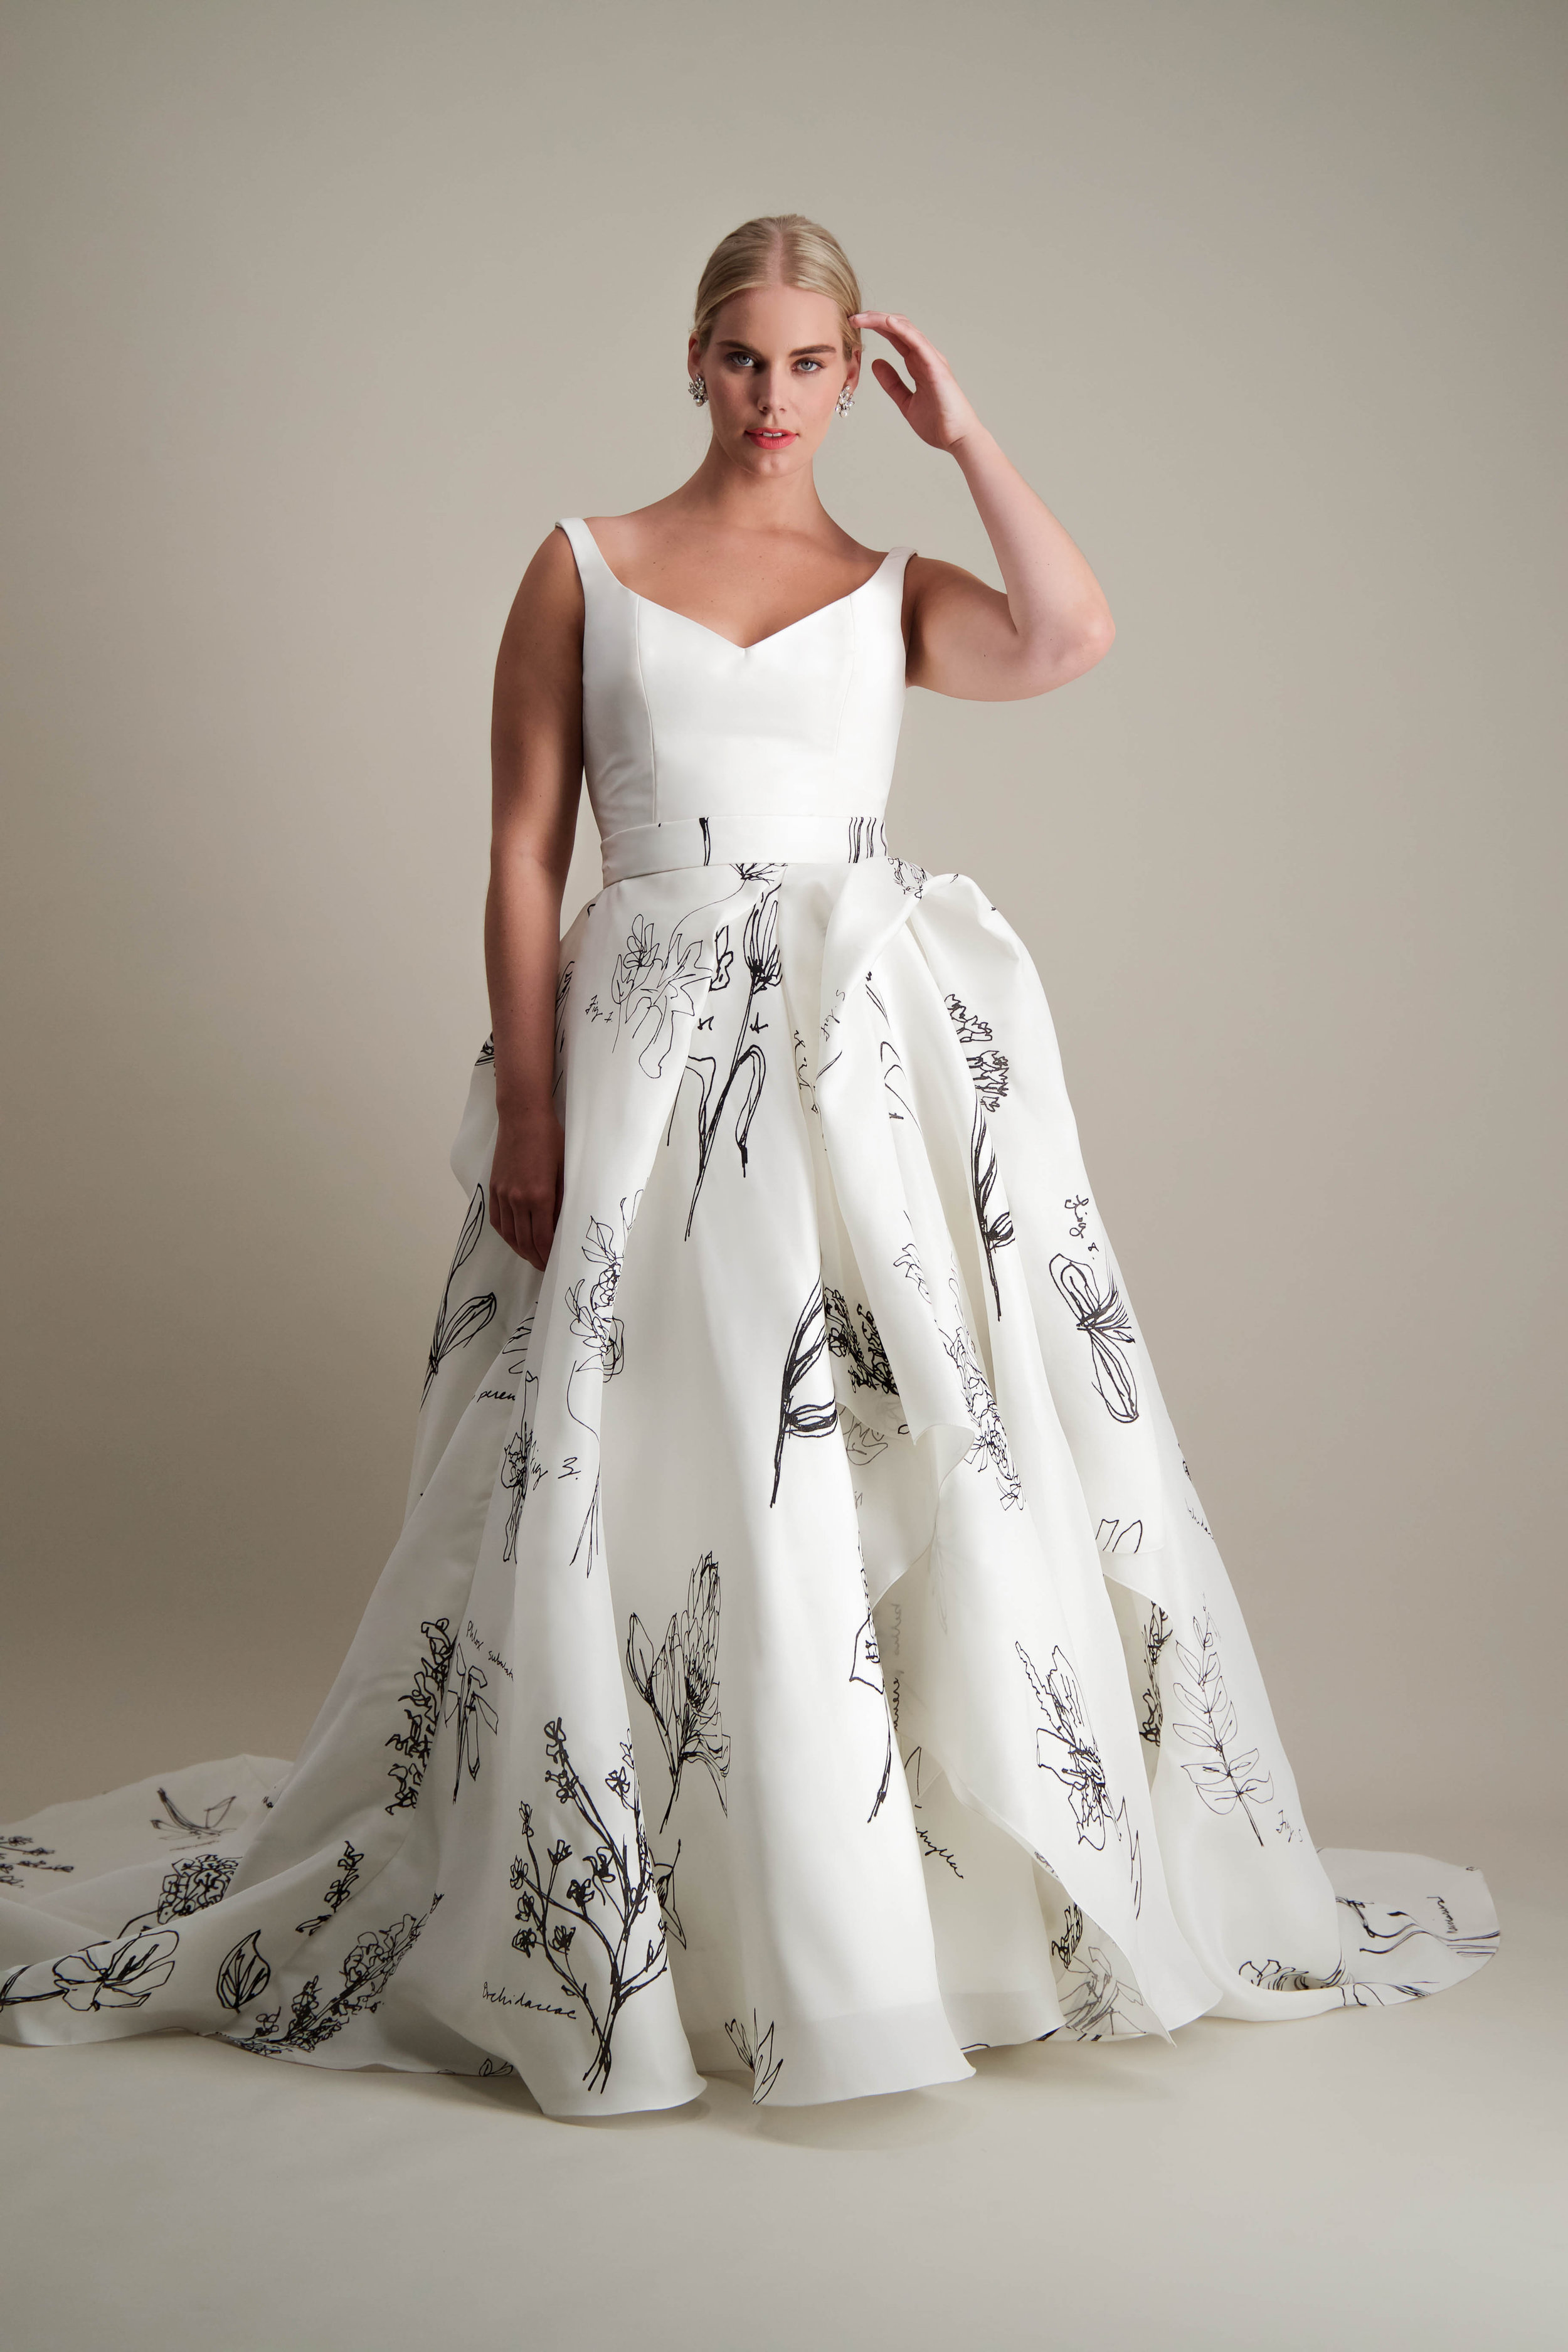 anthorium-skirt-ball-gown-printed-black-and-white-gown-2.jpg